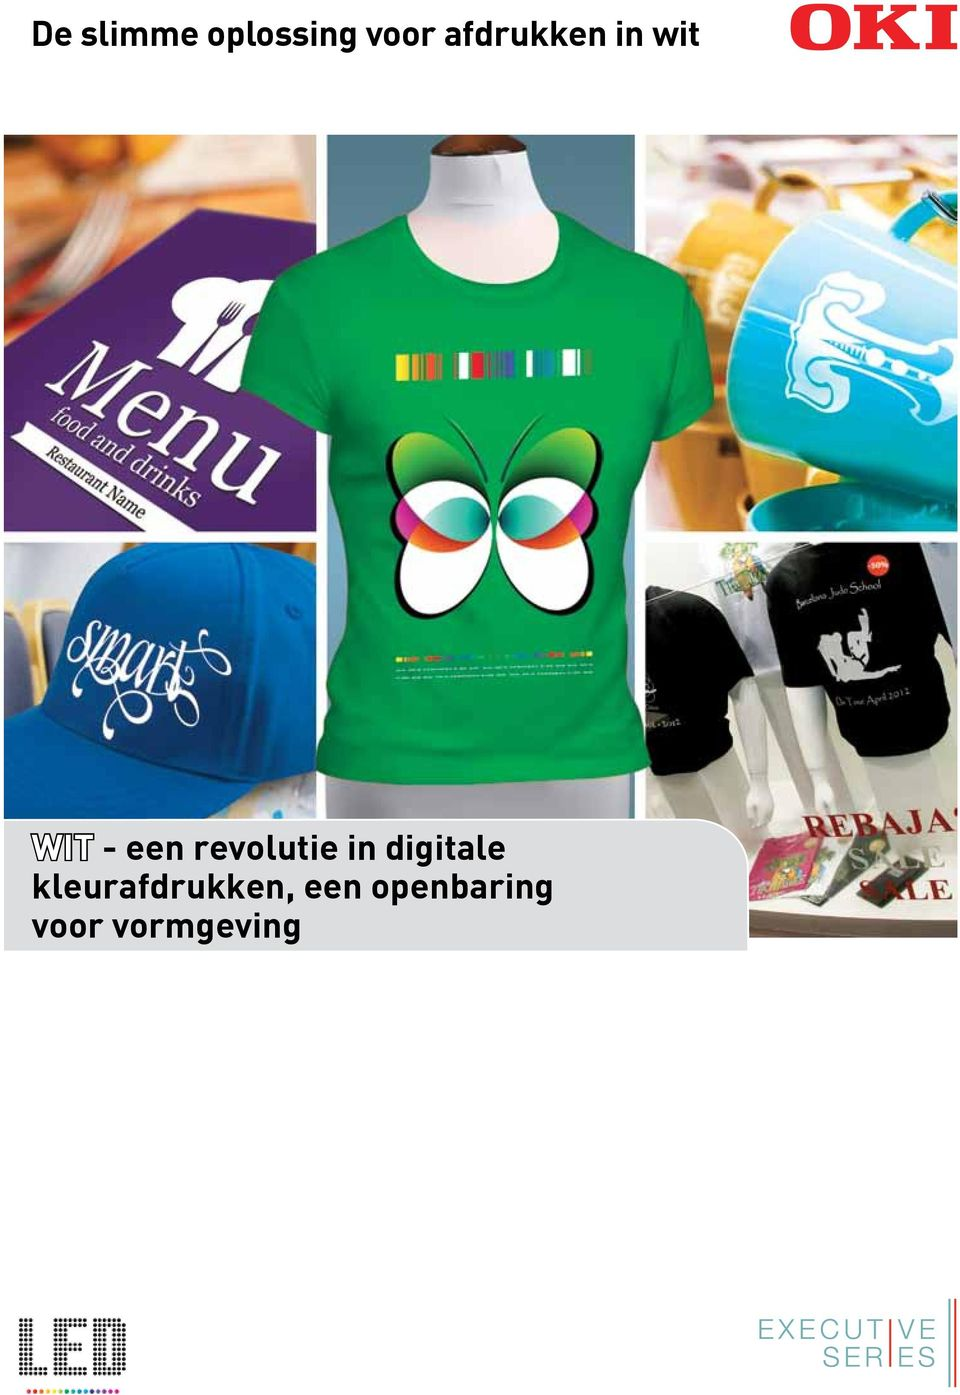 revolutie in digitale